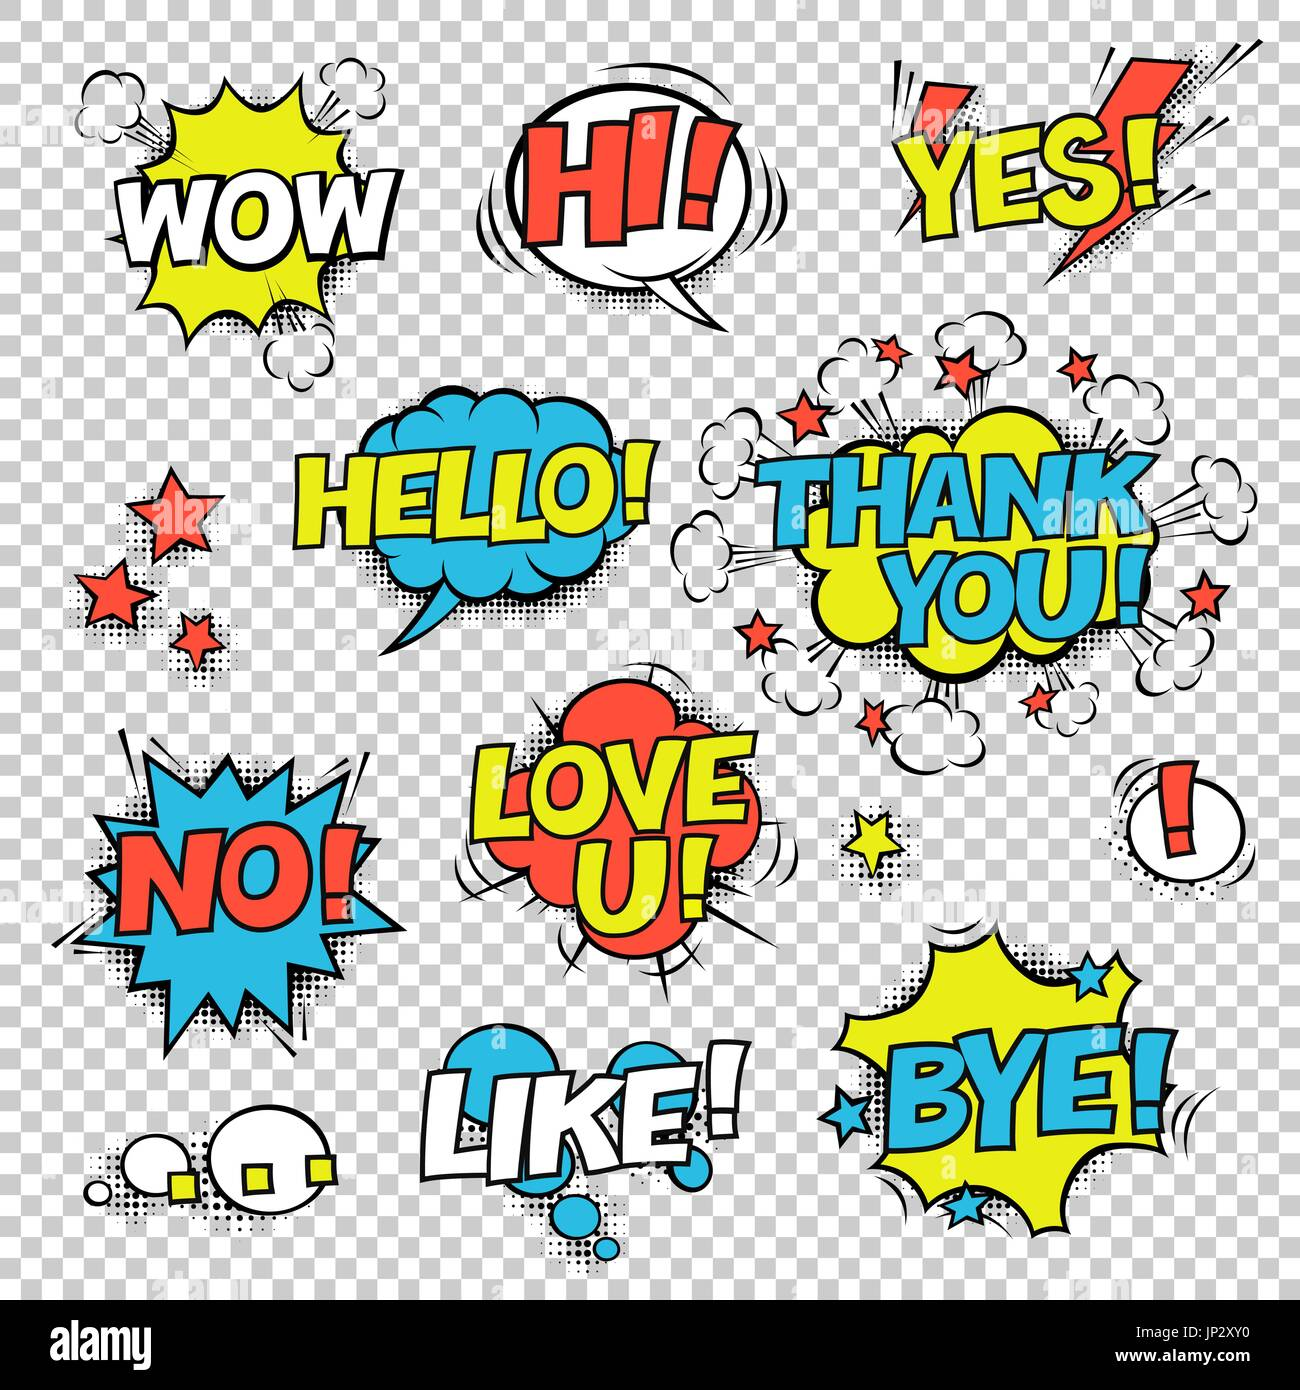 Hi Yes Thank You Hello Wow Love U No Like Bye Comic Speech Bubbles Set Halftones Stars And Other Elements In Separated Layers Colorful Design On Transparent Background 1777747 Iphotos Com